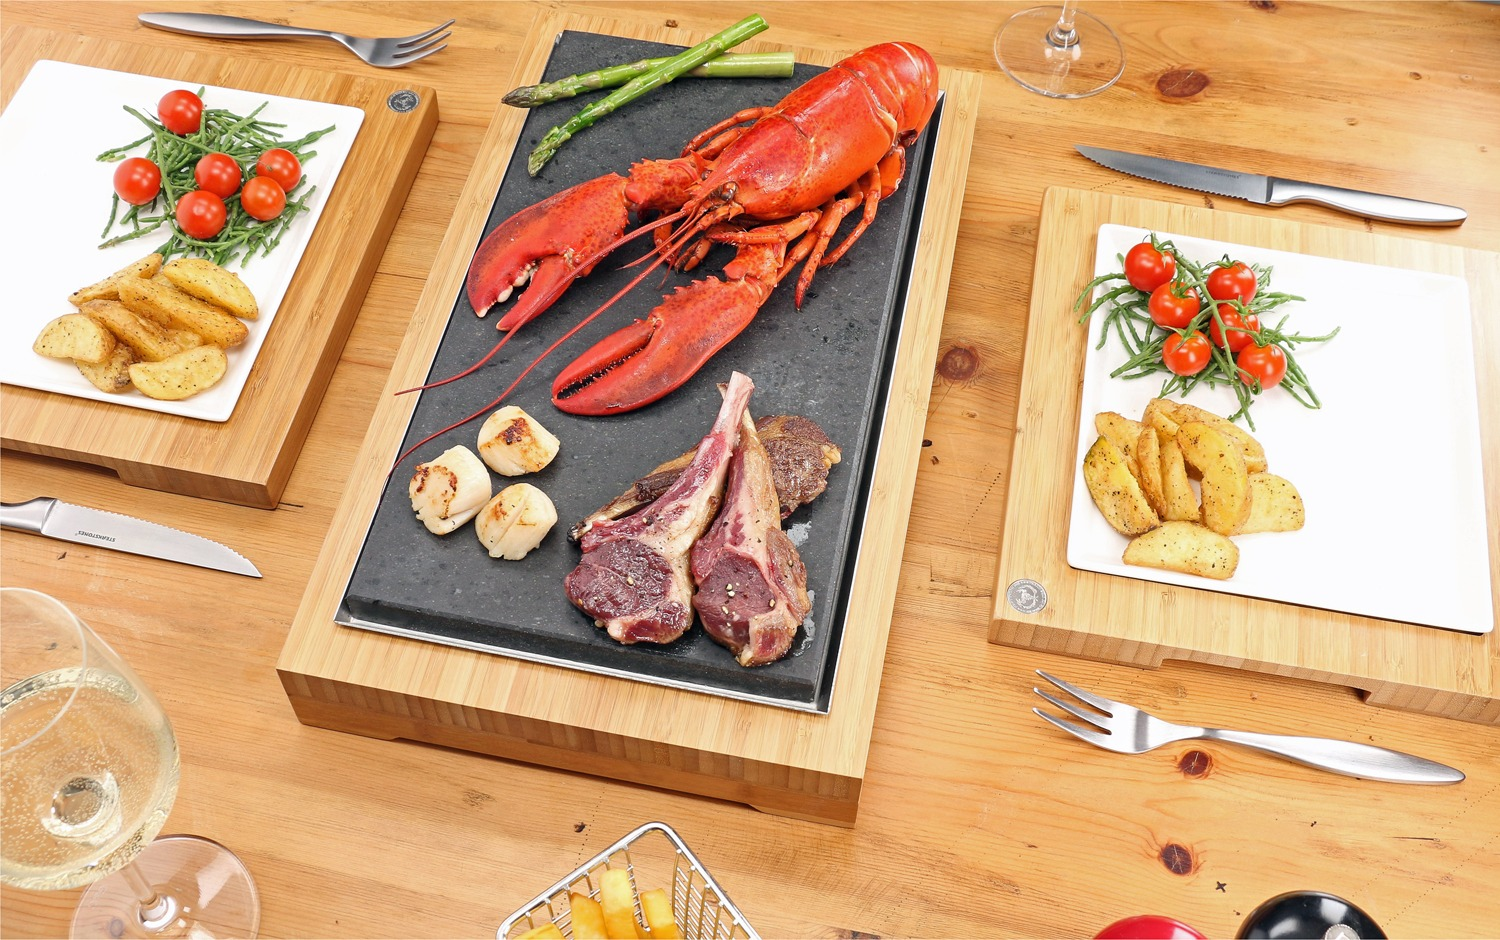 Lamb & Lobster Seared on the SteakStones Raised Sharing Steak Plate